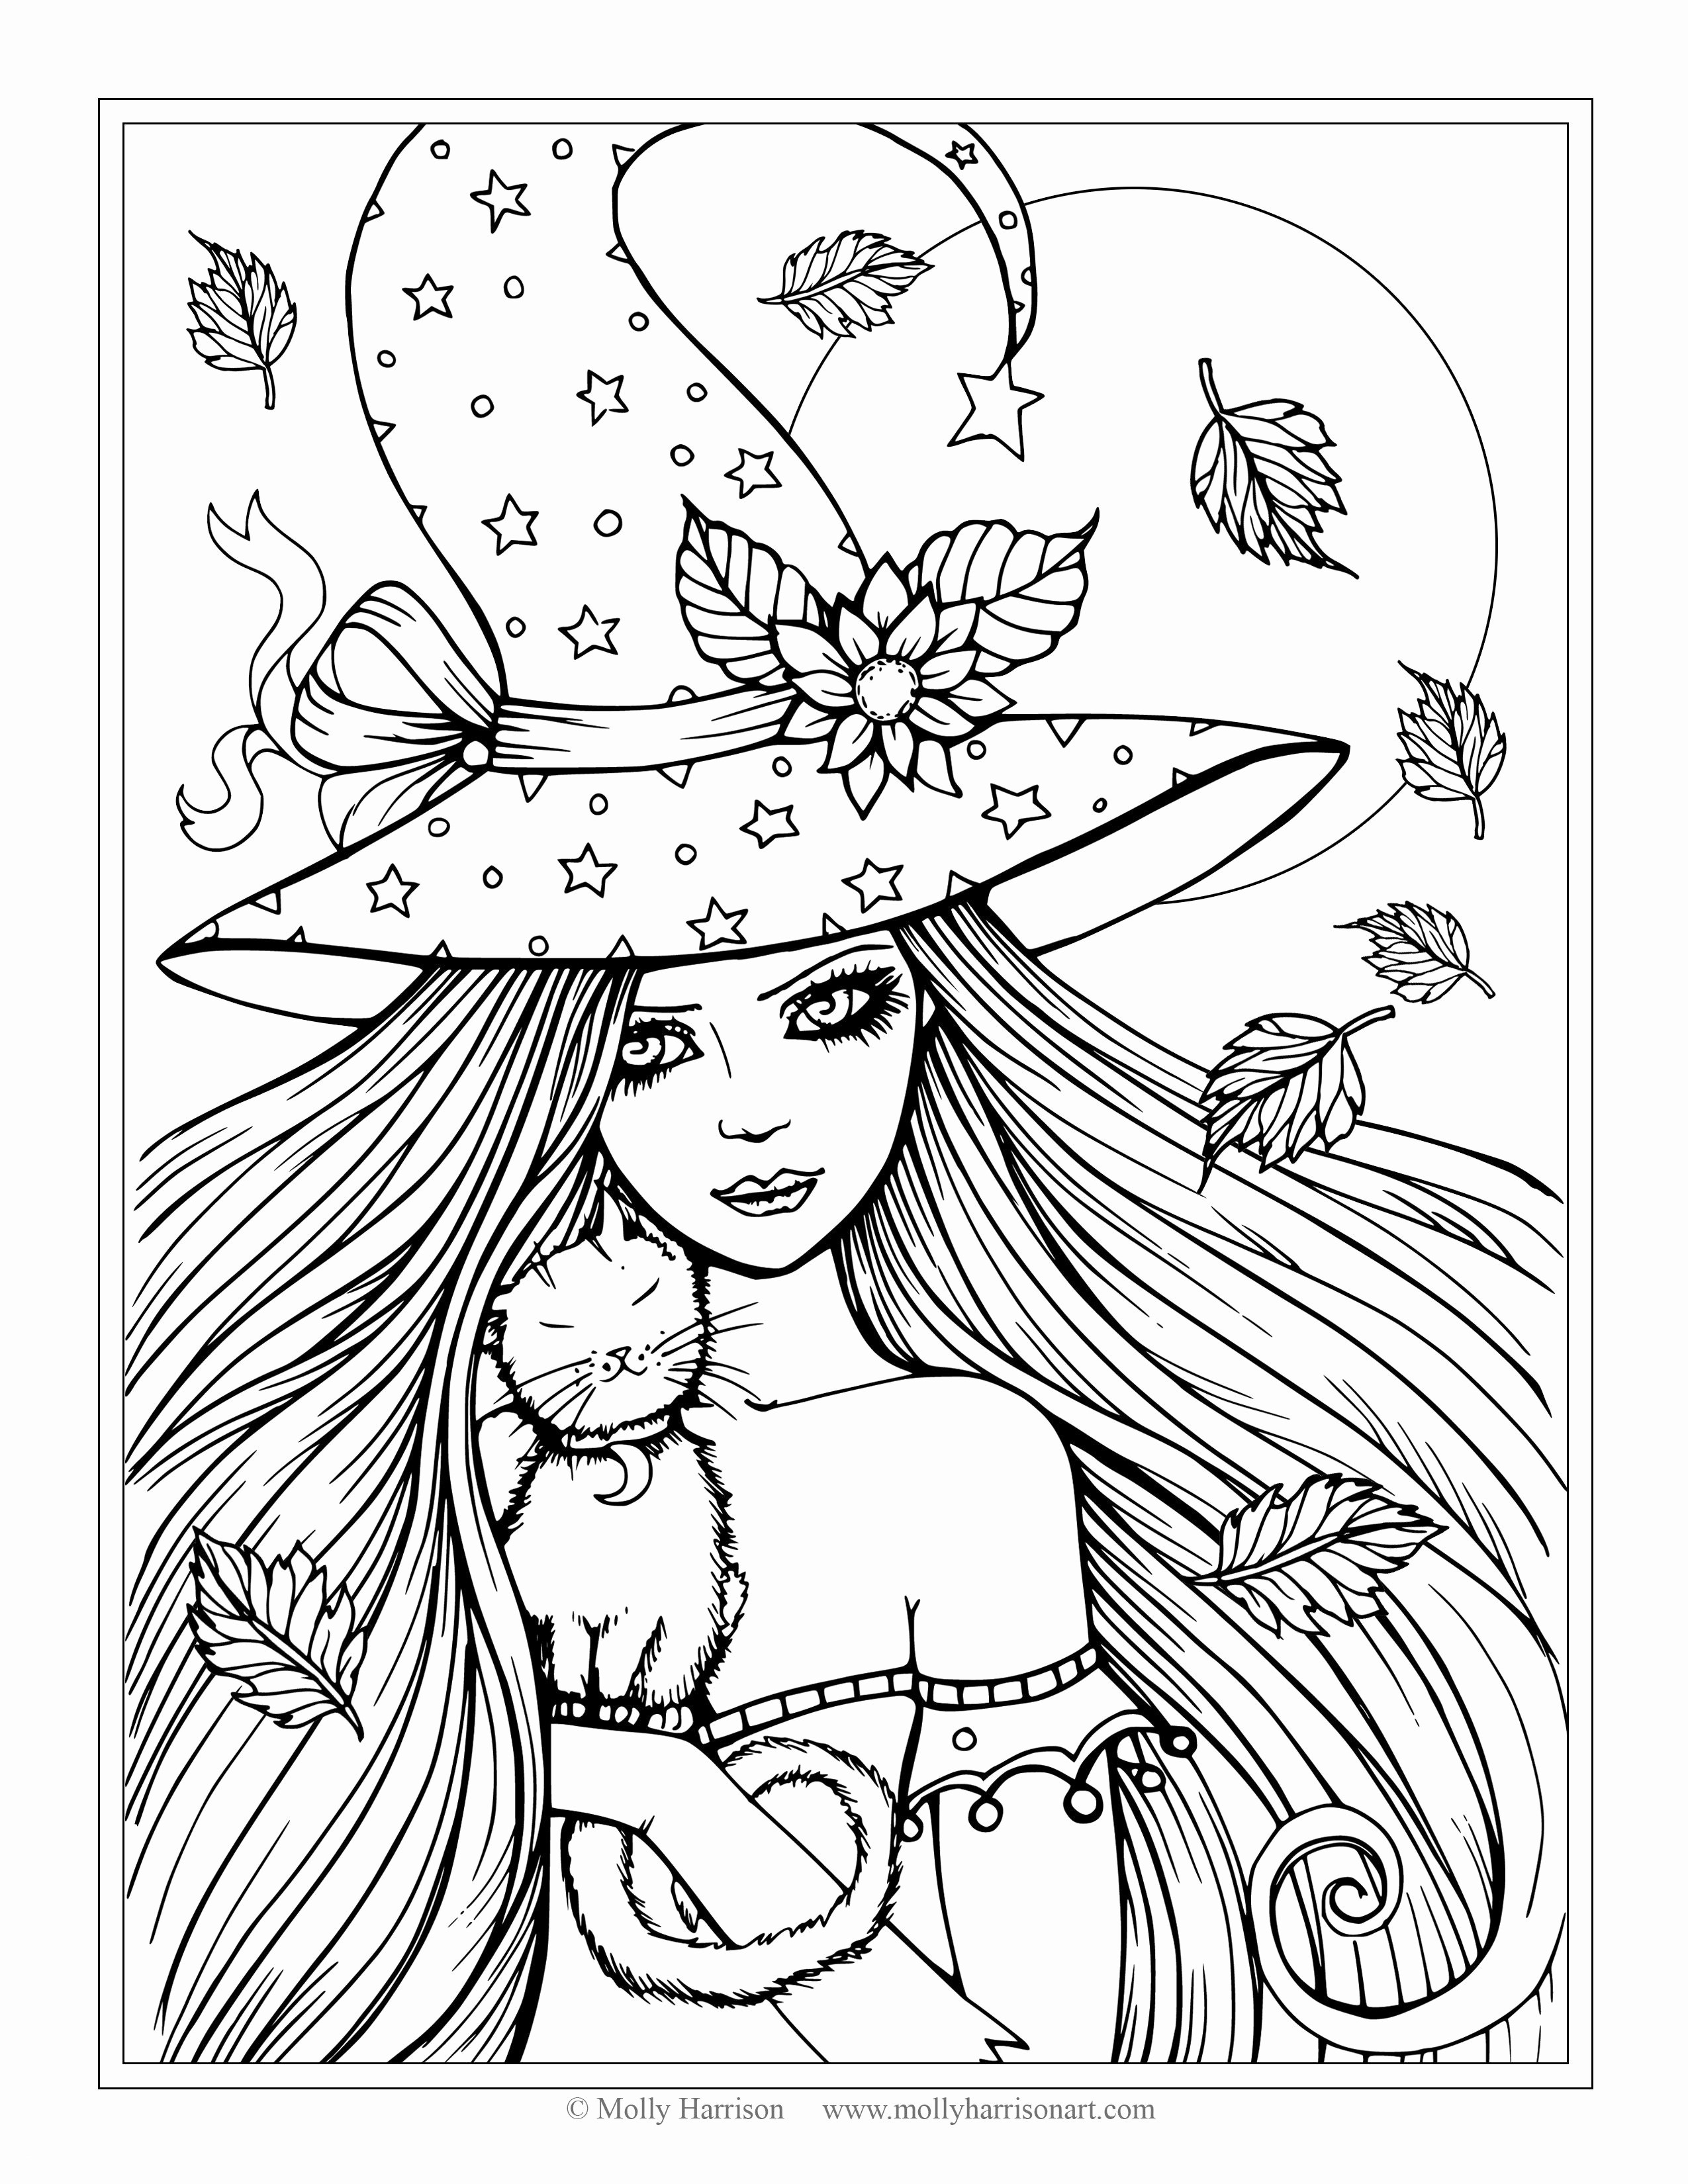 loon coloring pages Download-Downloadable Coloring Pages Free Inspirational Loon Coloring Page Heathermarxgallery 20-i